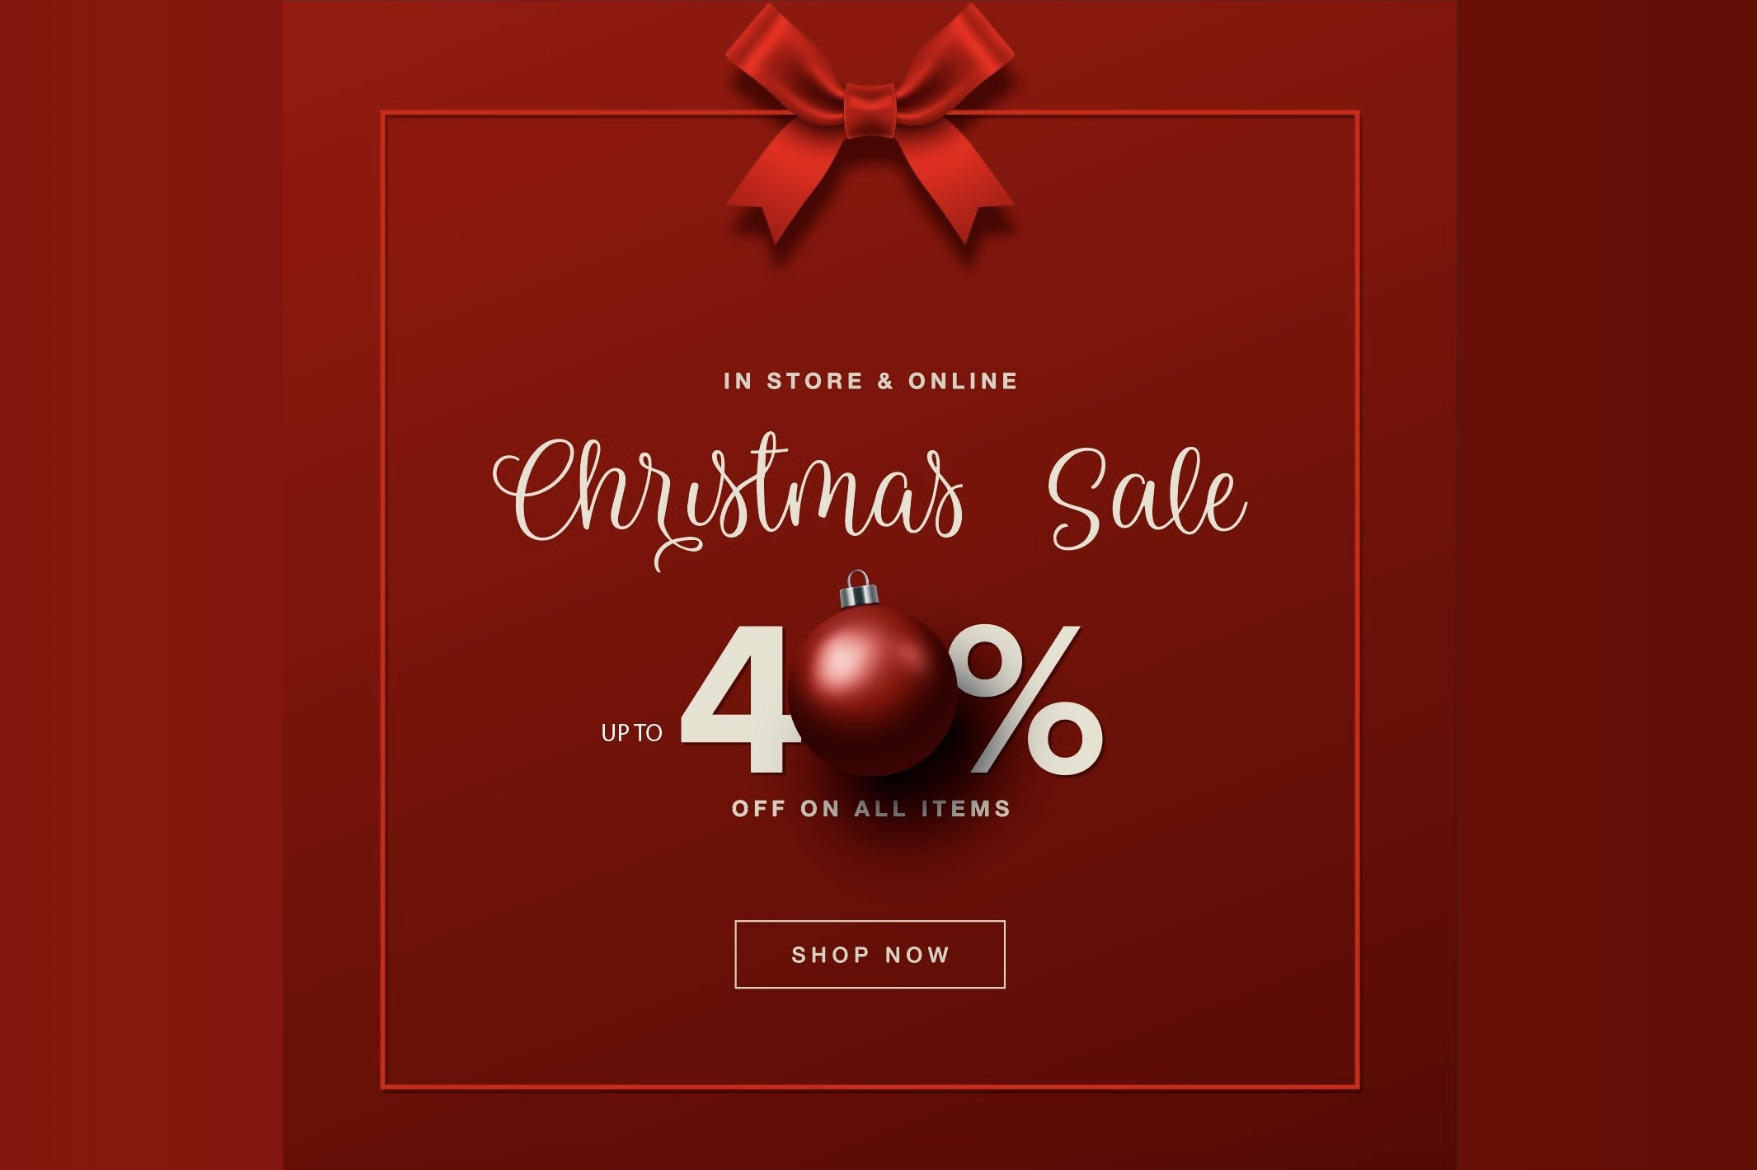 SALE LOVE BY SANDRO